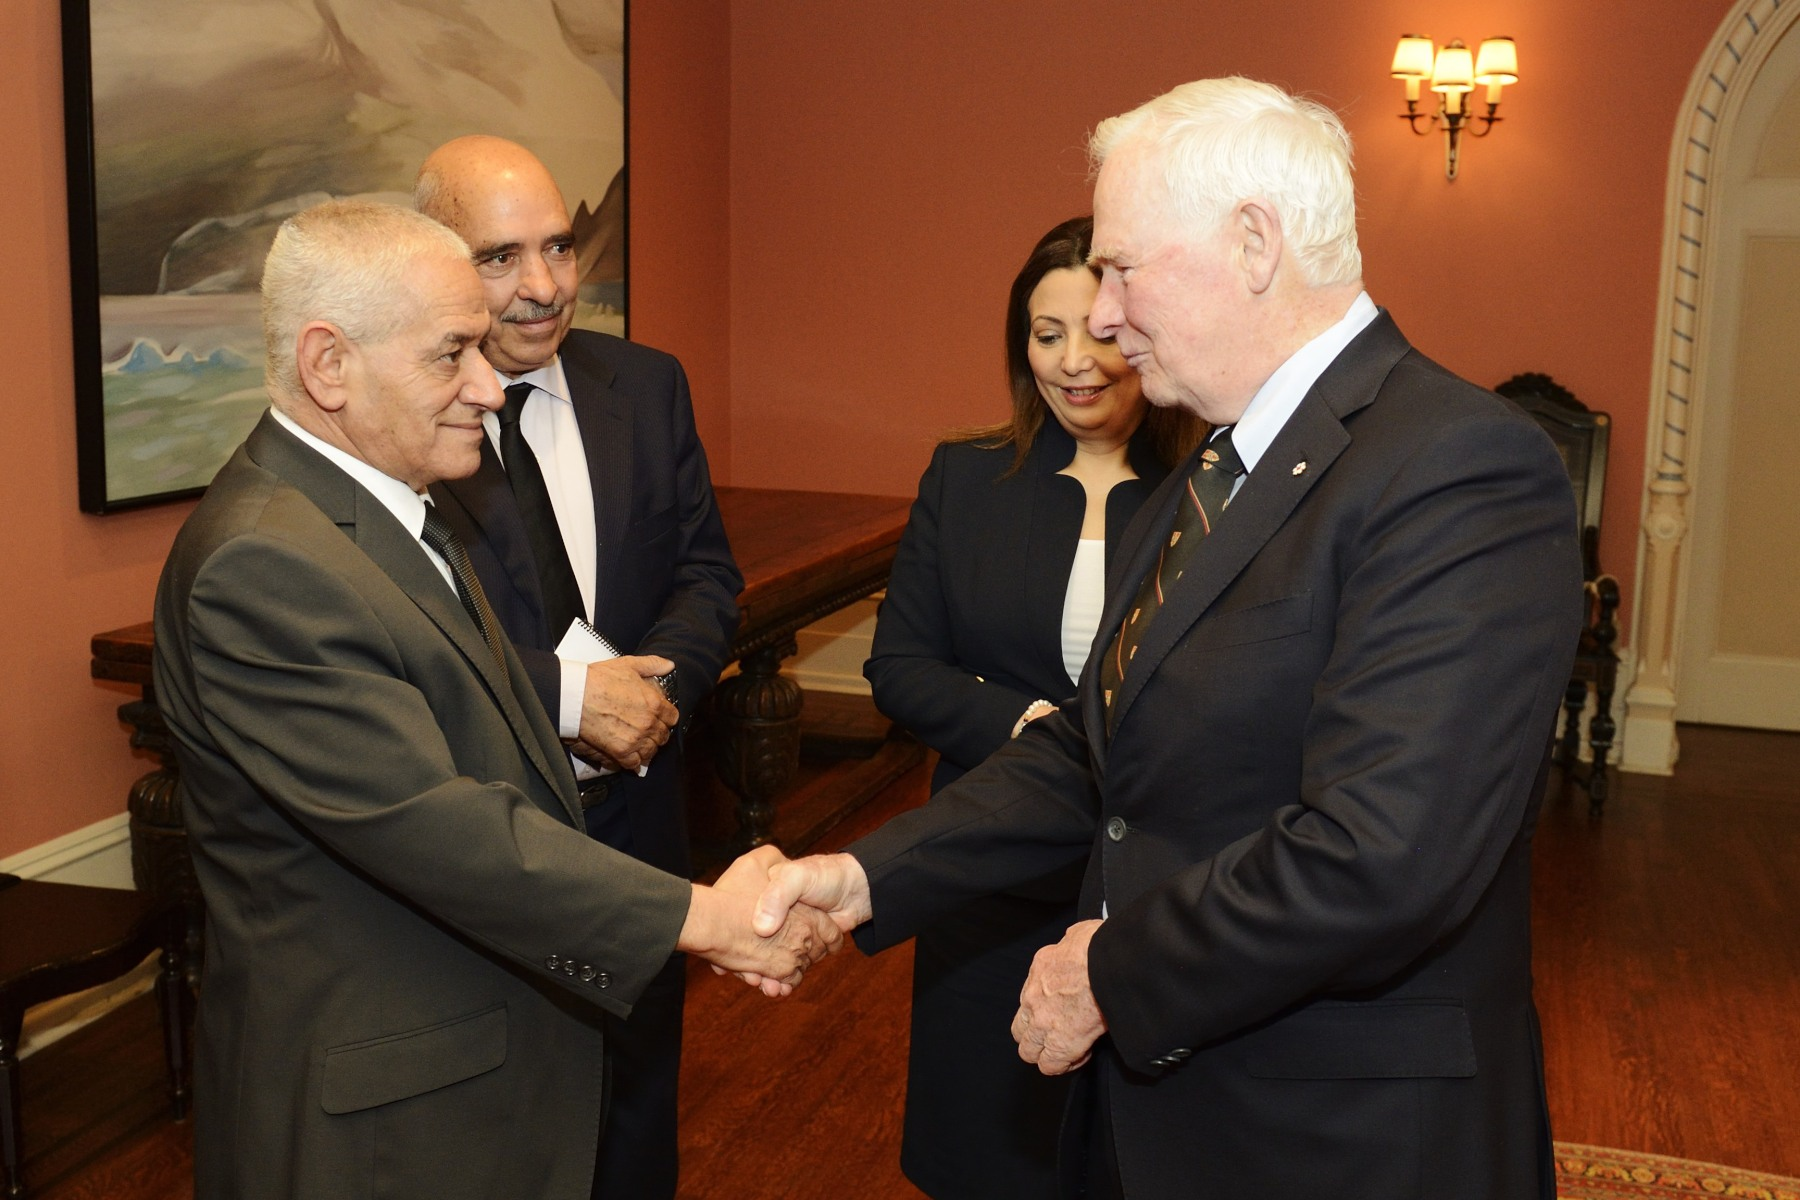 The Governor General also greeted Mr. Houcine Abassi, Secretary General of the Tunisian General Labour Union.